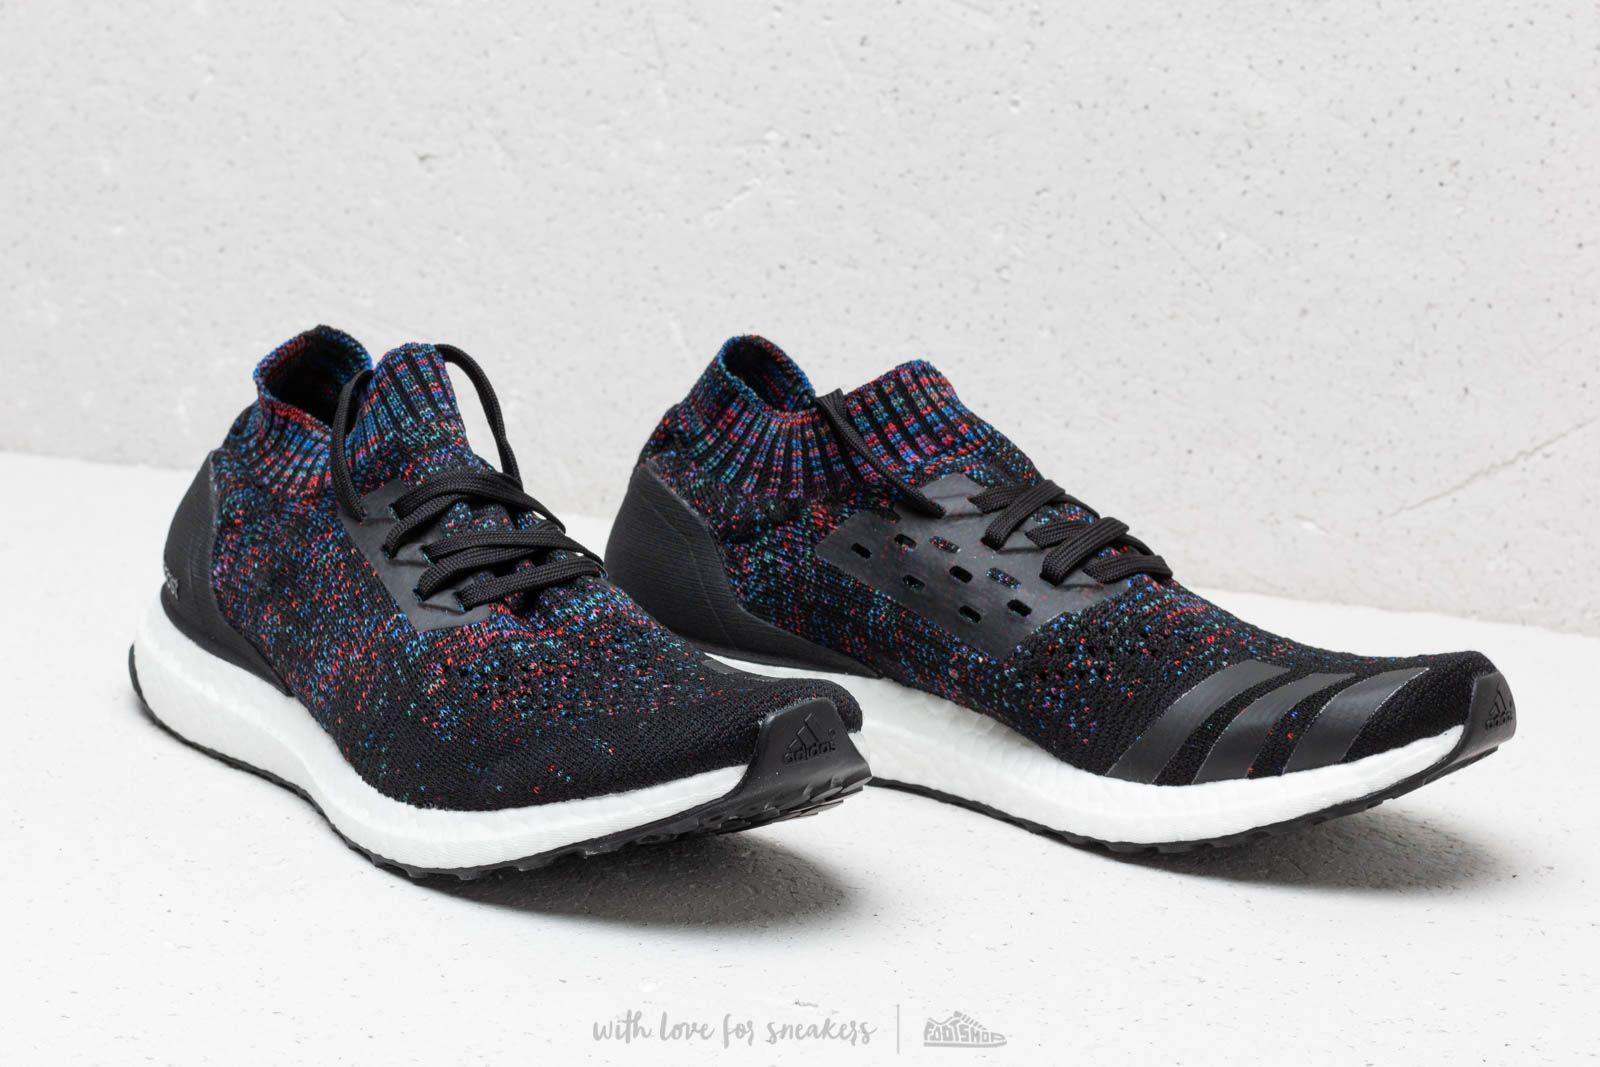 new product f1dc4 5960d Adidas Originals - Adidas Ultraboost Uncaged Core Black Active Red Blue  for Men -. View fullscreen